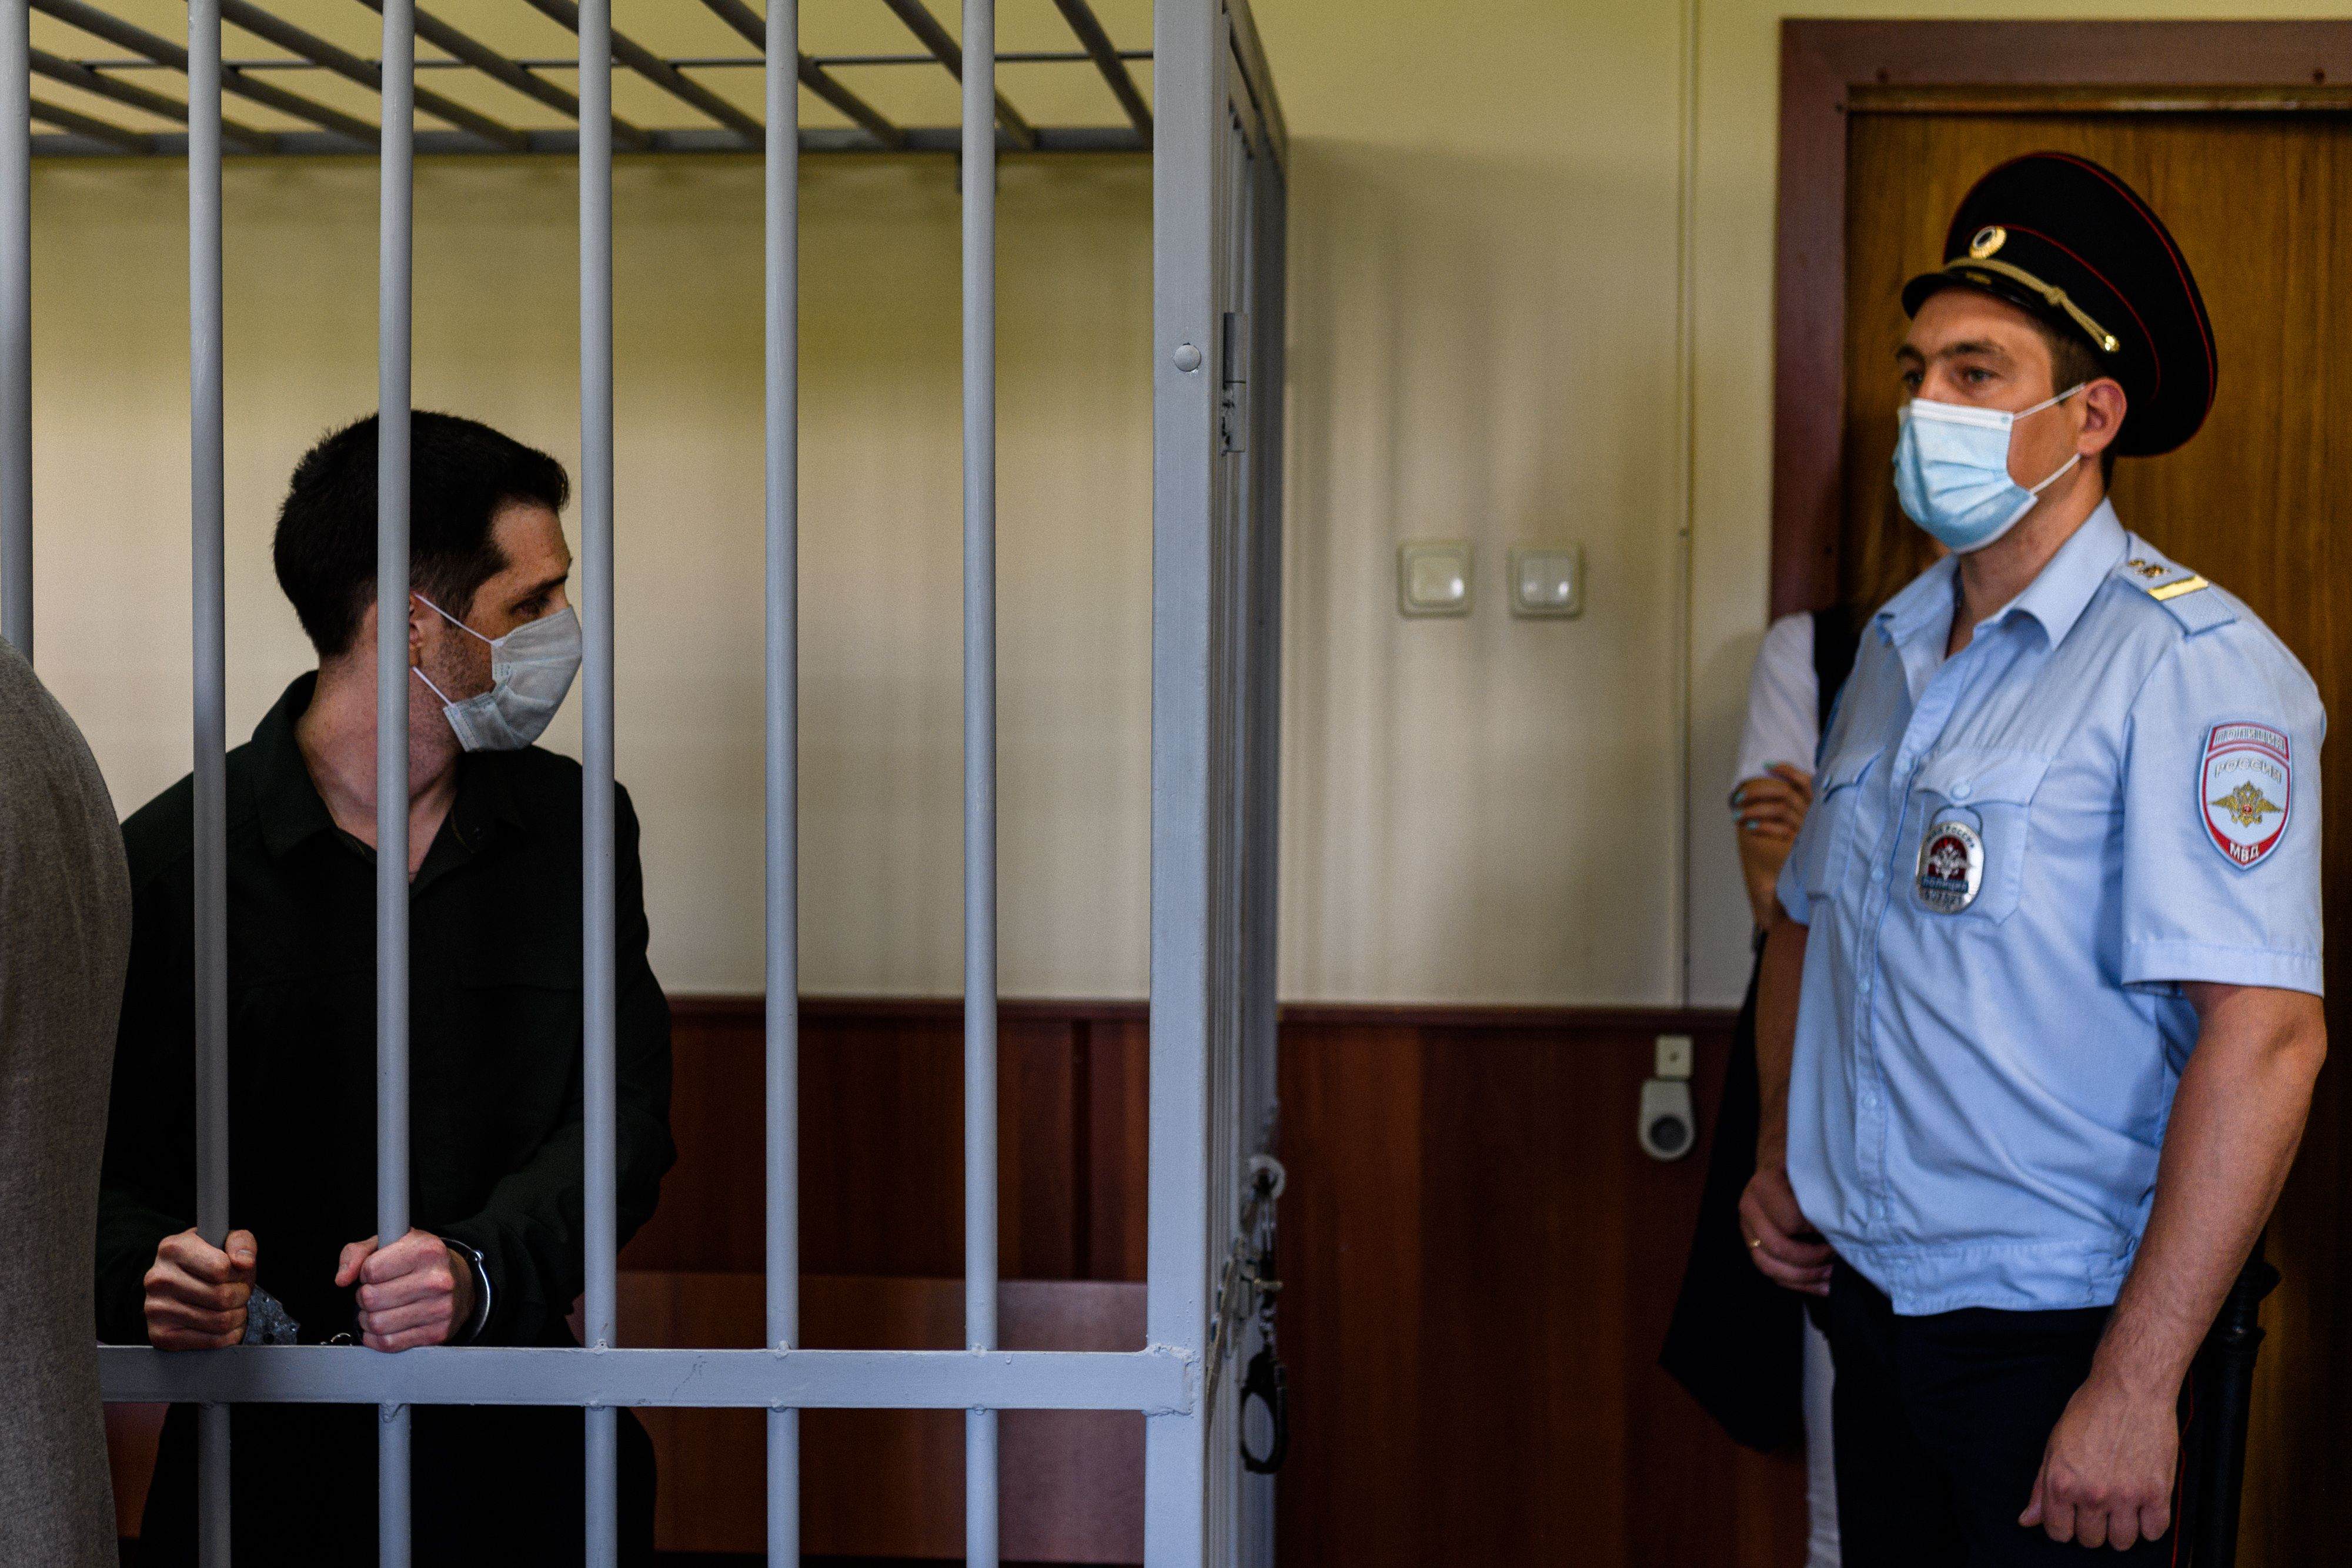 Trevor Reed stands inside a defendants' cage during his verdict hearing at a Moscow court on July 30, 2020. (Dimitar Dilkoff/AFP via Getty Images)